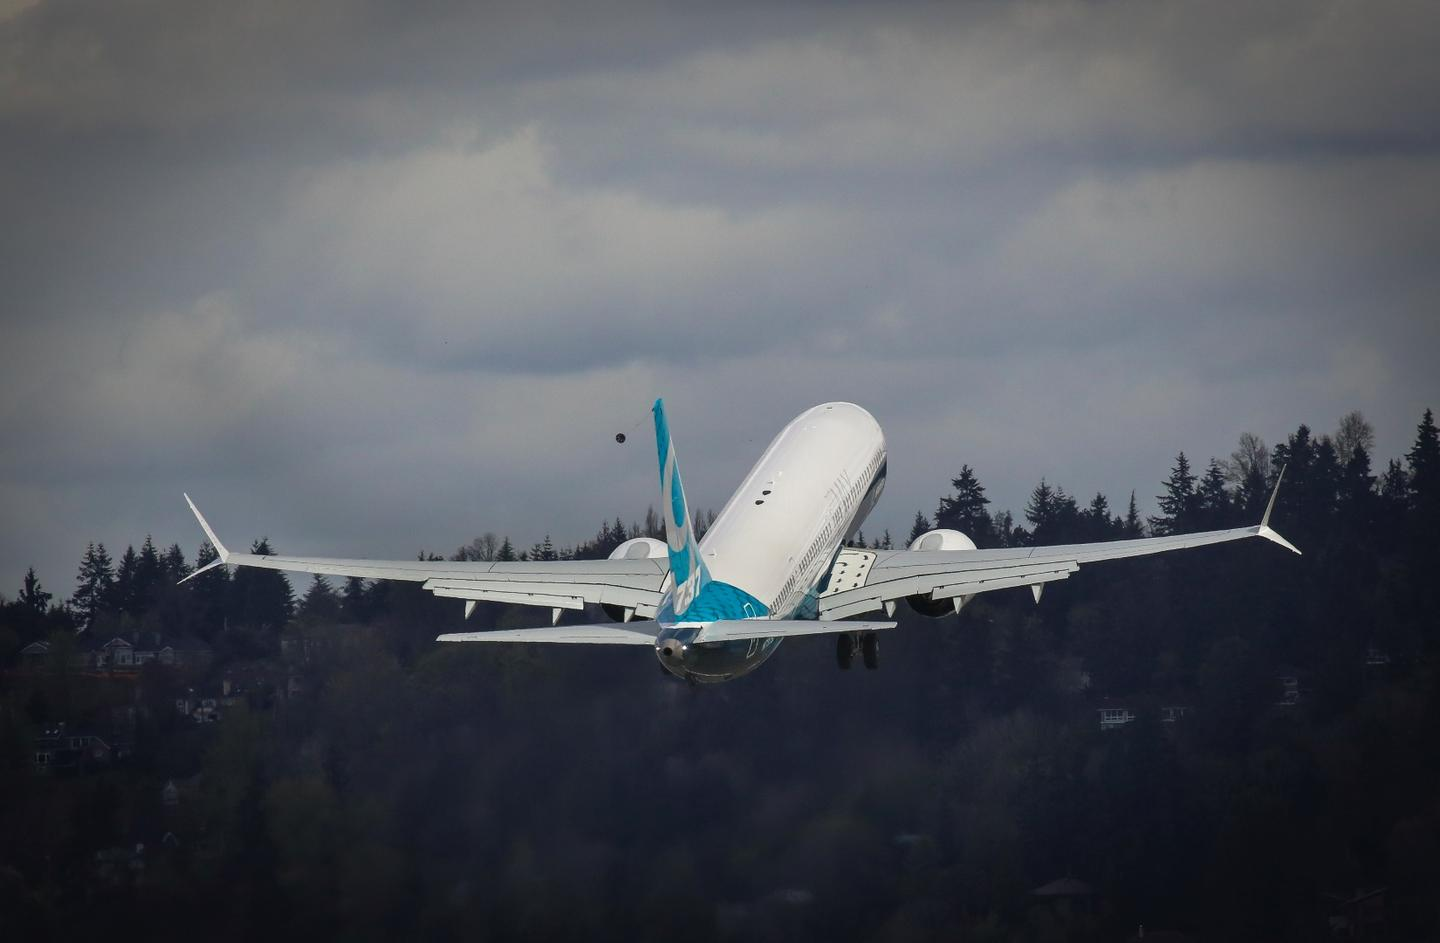 The Boeing 737 MAX 9 takes off from Renton, Washington